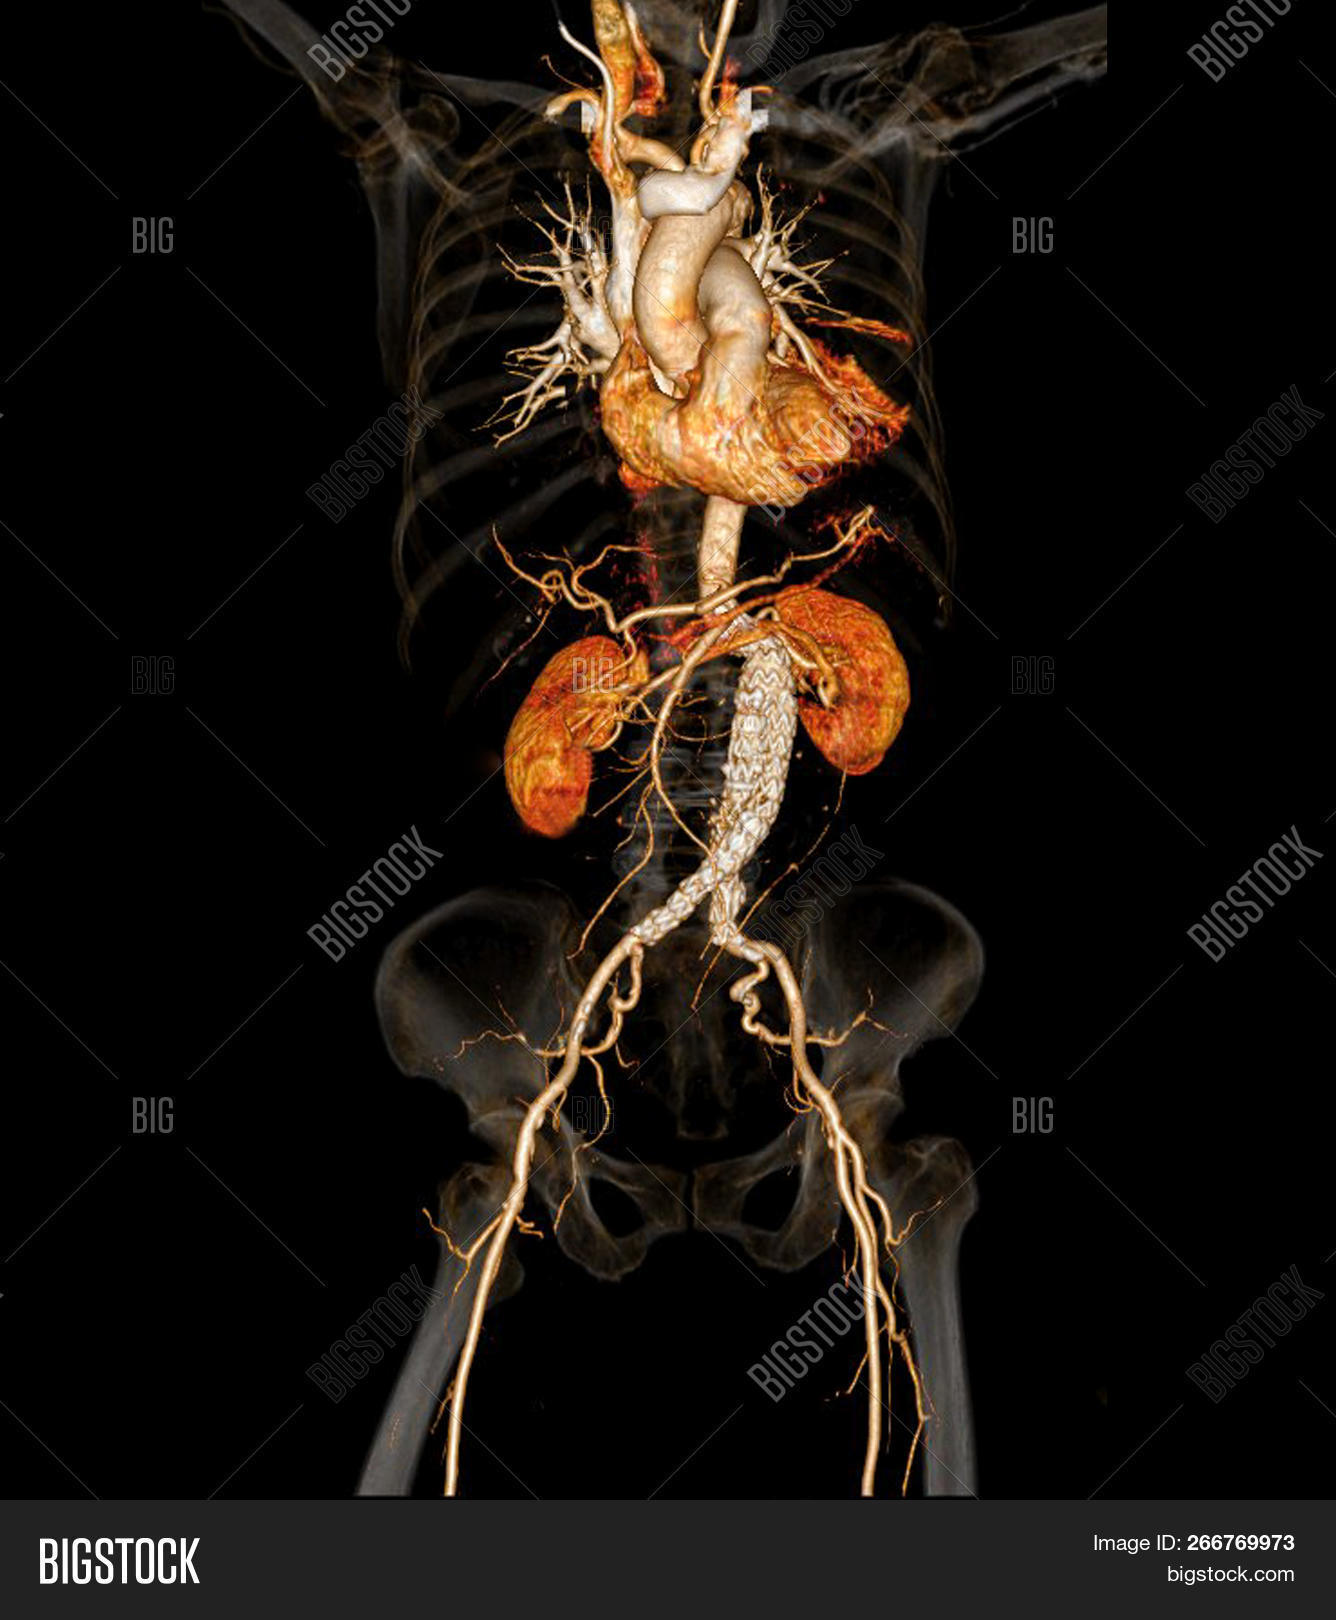 Ct Angiographphy Image Photo Free Trial Bigstock